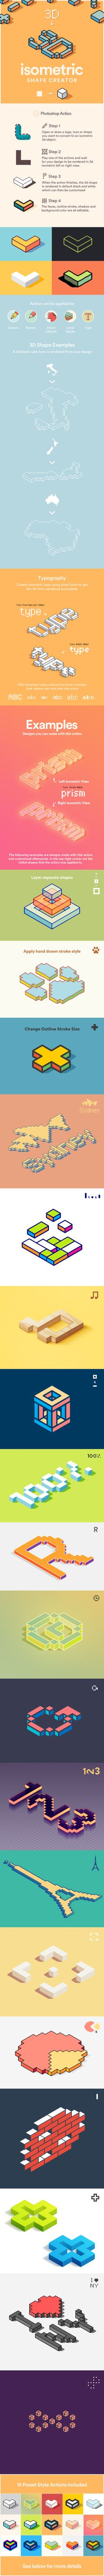 3D Isometric Shape Creator - Actions Photoshop